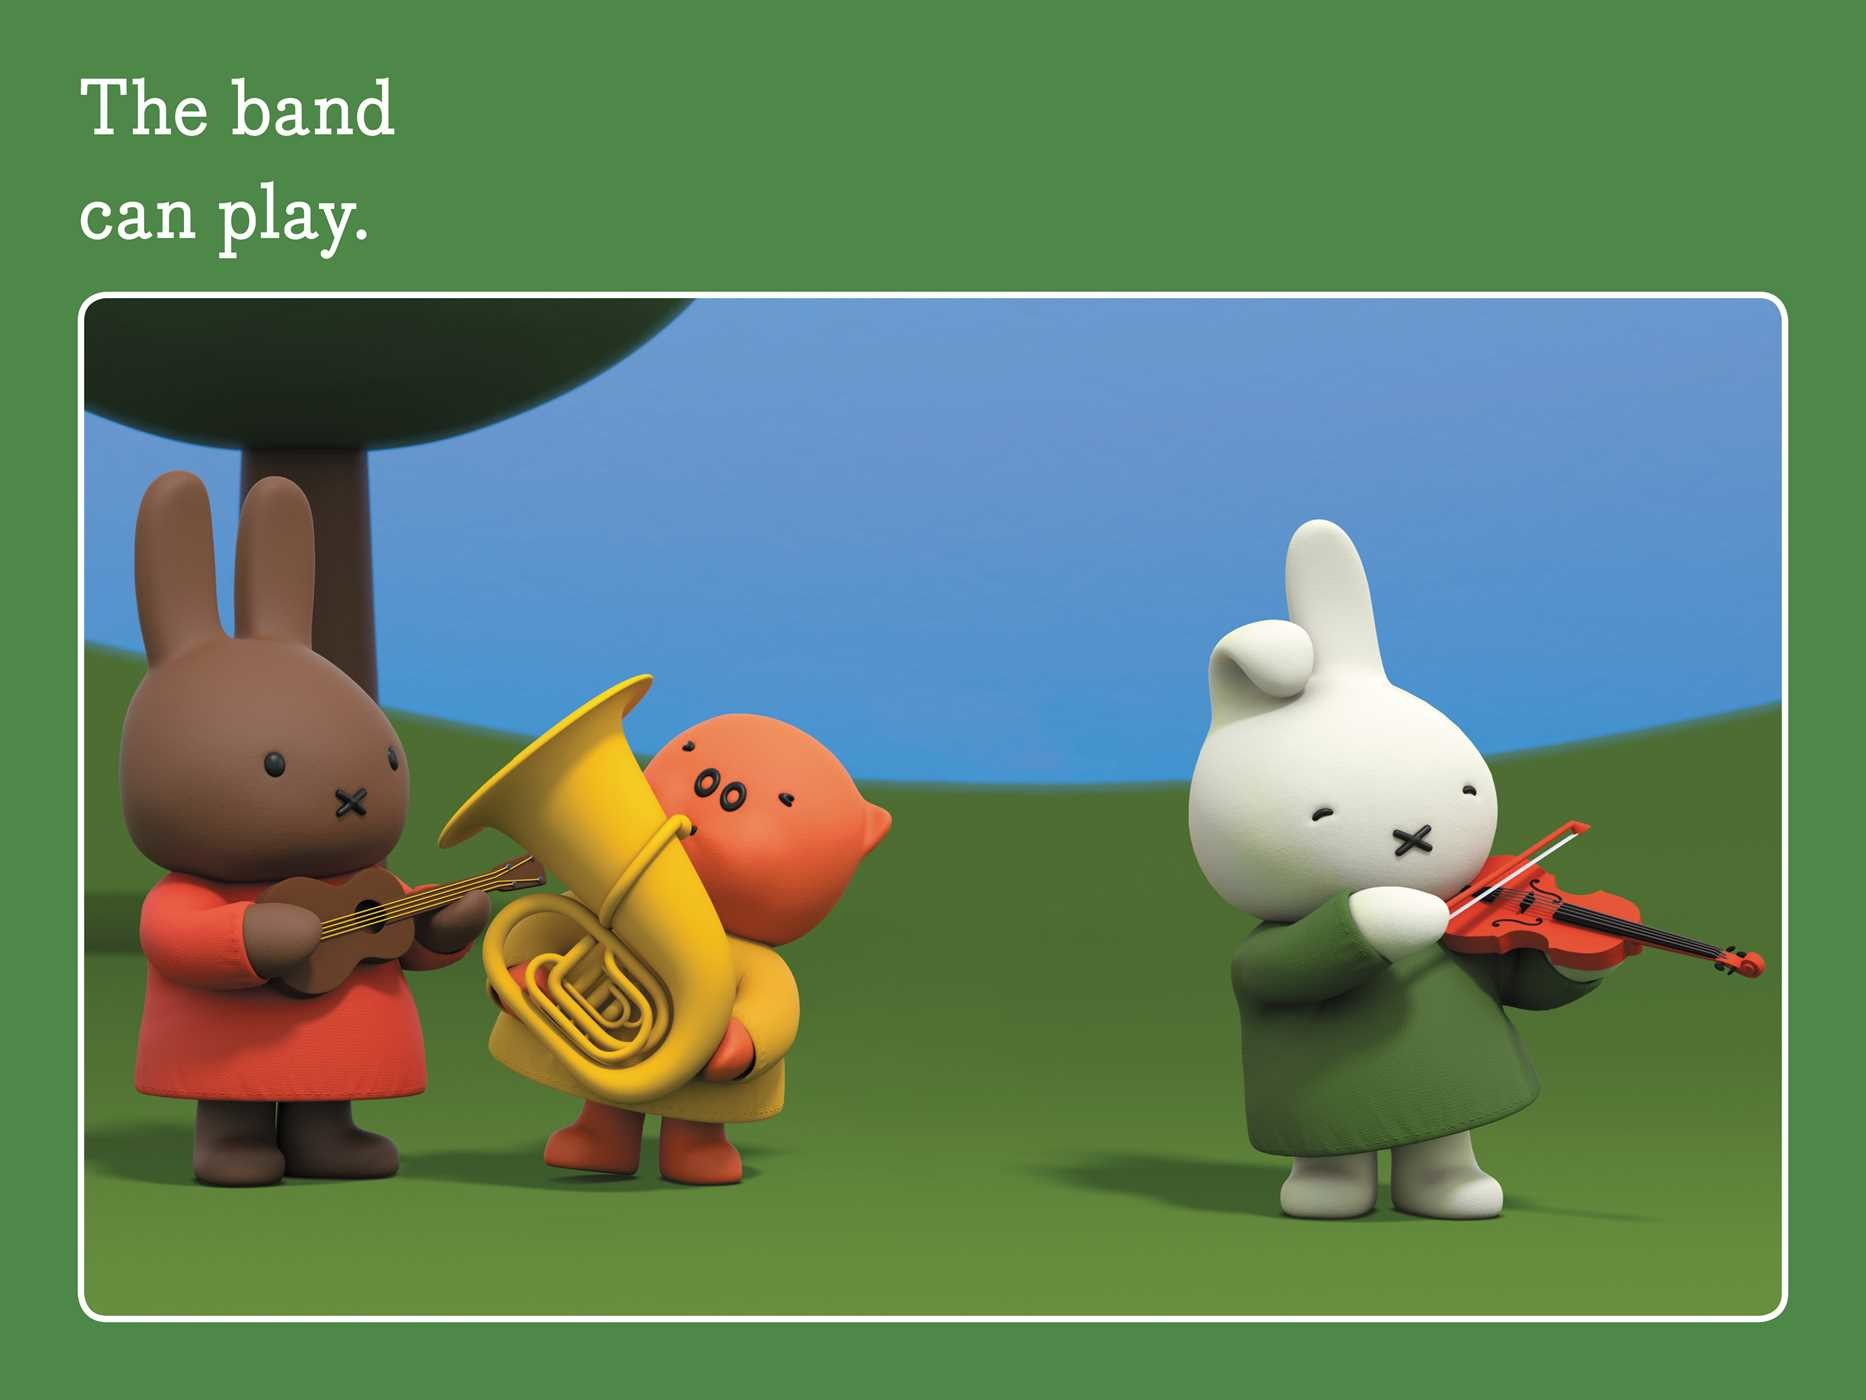 Miffy and the band 9781534416239.in01